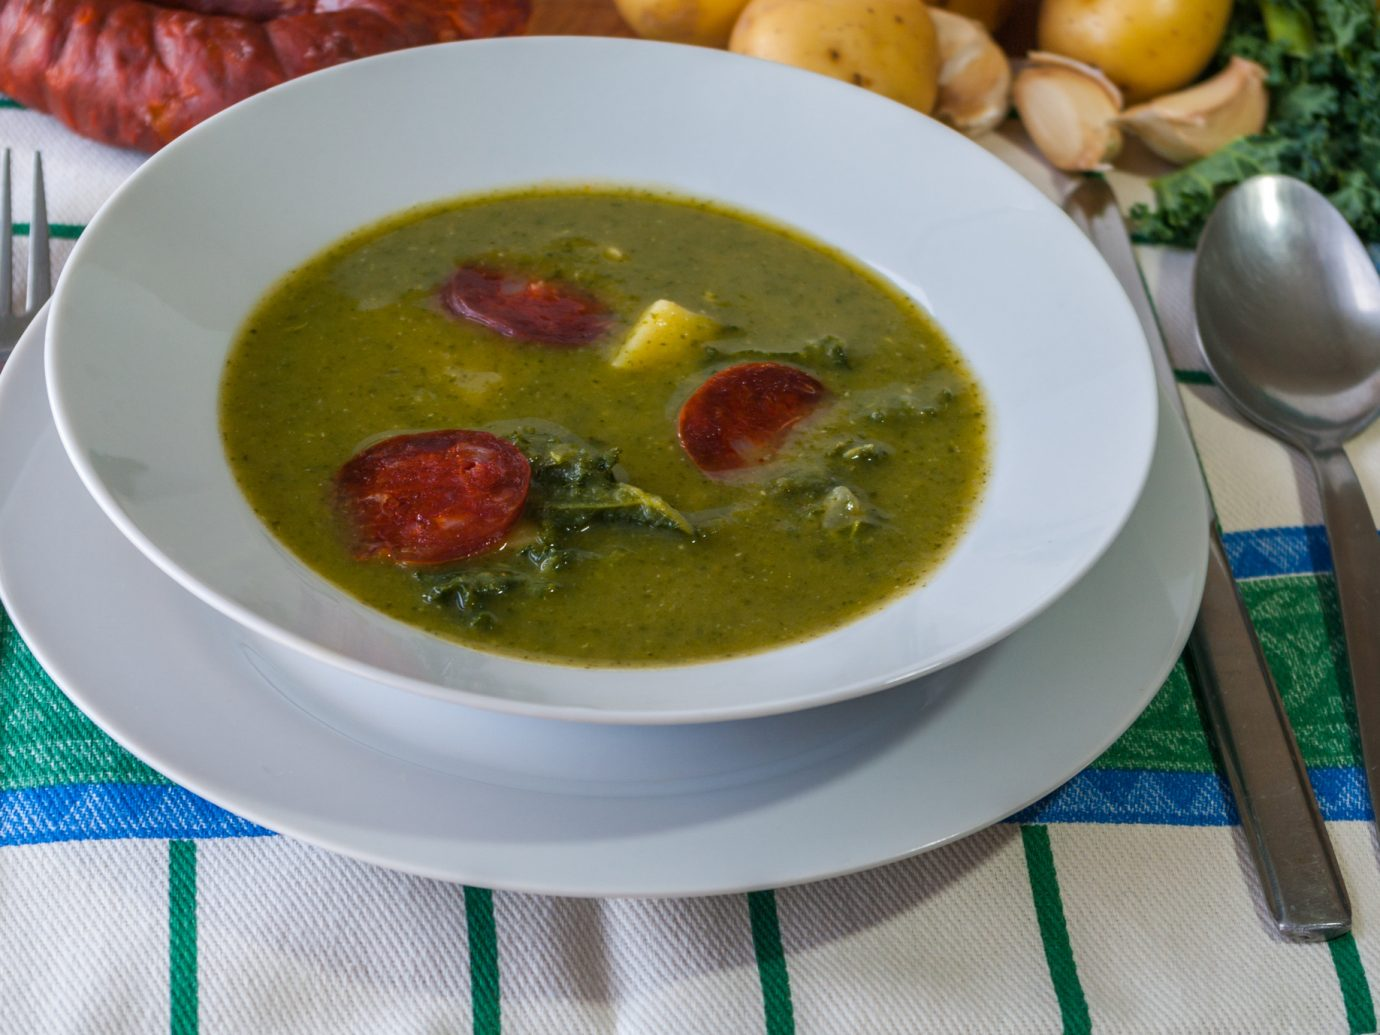 Caldo Verde - traditional Portuguese green soup made with kale, potatoes, onion, garlic and chorizo